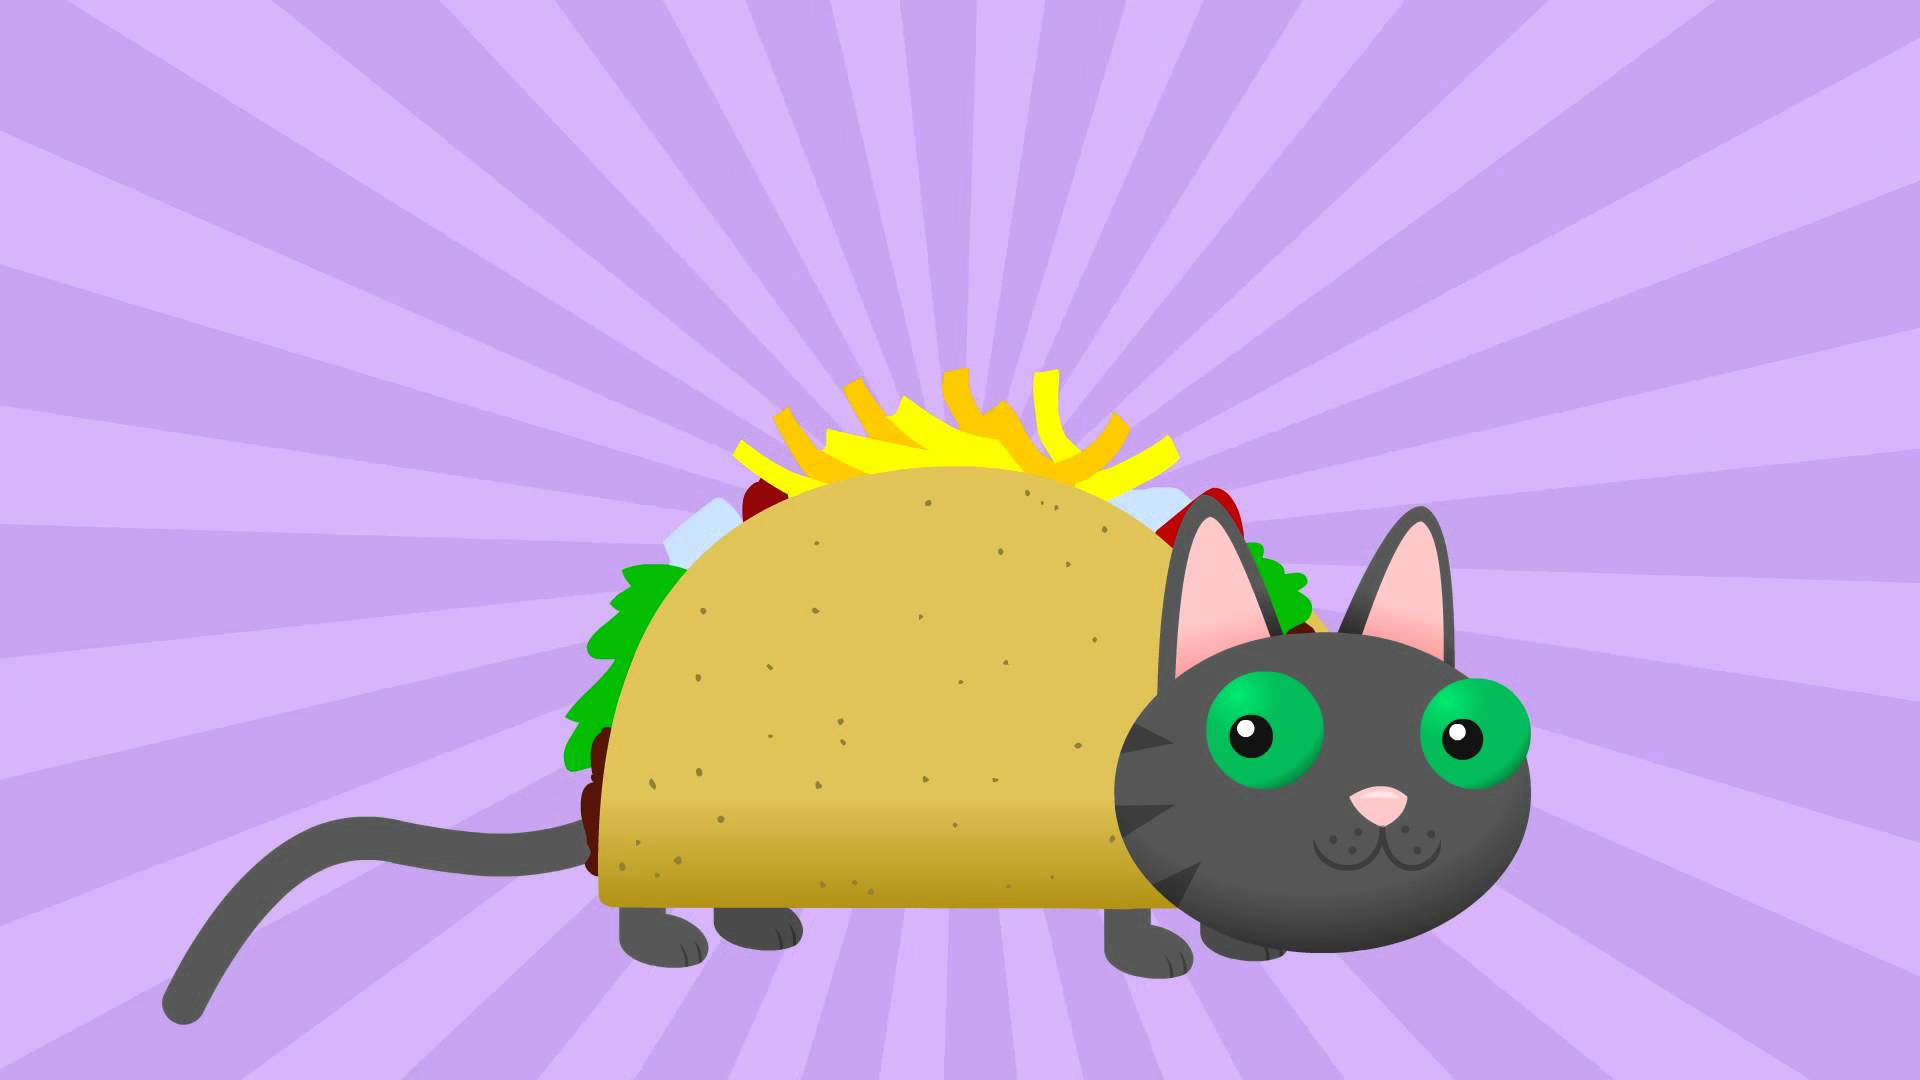 'TACOCAT', An Animated Music Video About a Cat Made Out of a Taco Whose Name Spelled Forward & Backward is Taco Cat